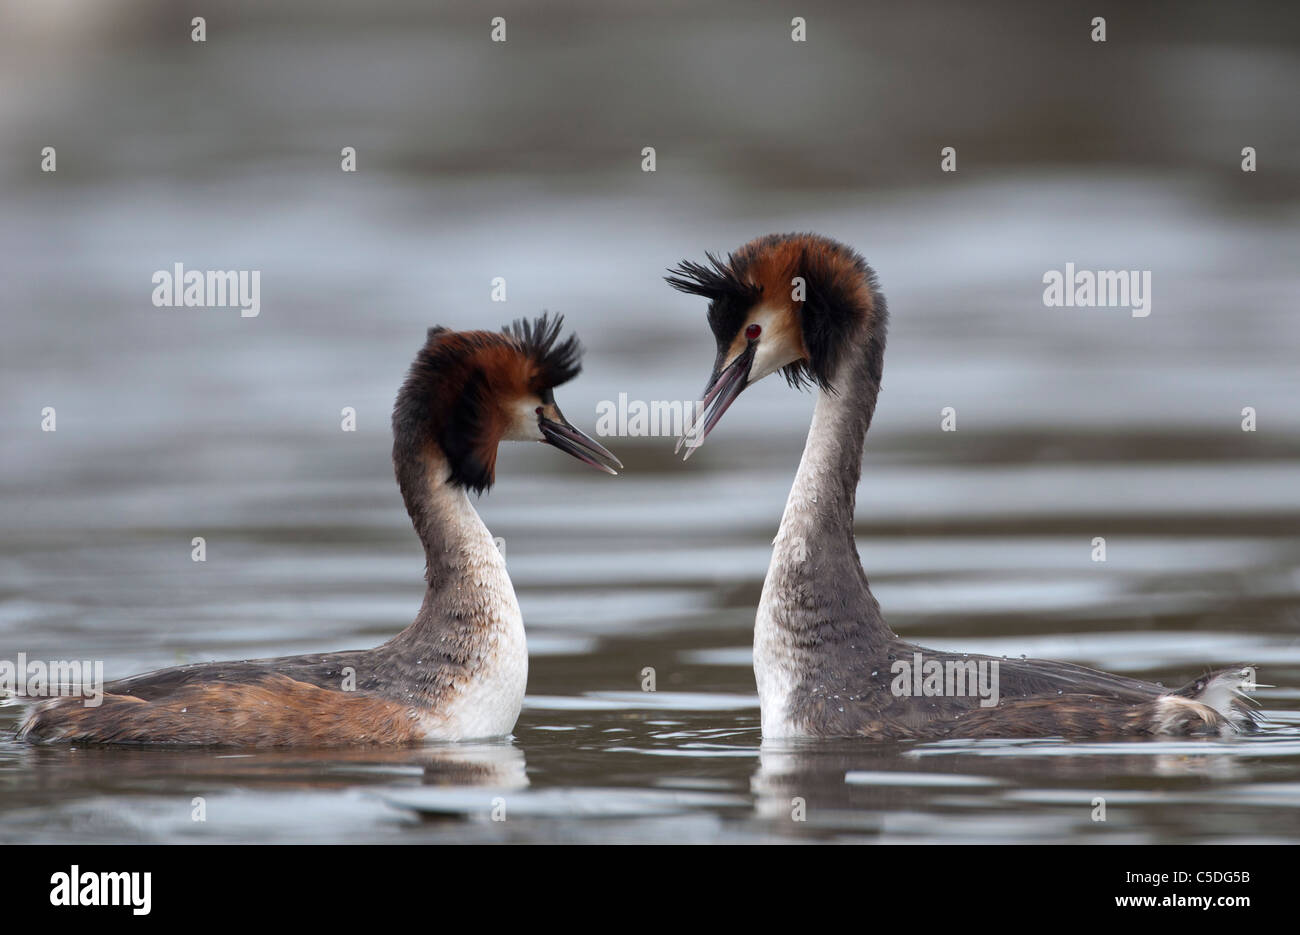 A pair of Great Crested Grebes displaying the mating dance - Stock Image